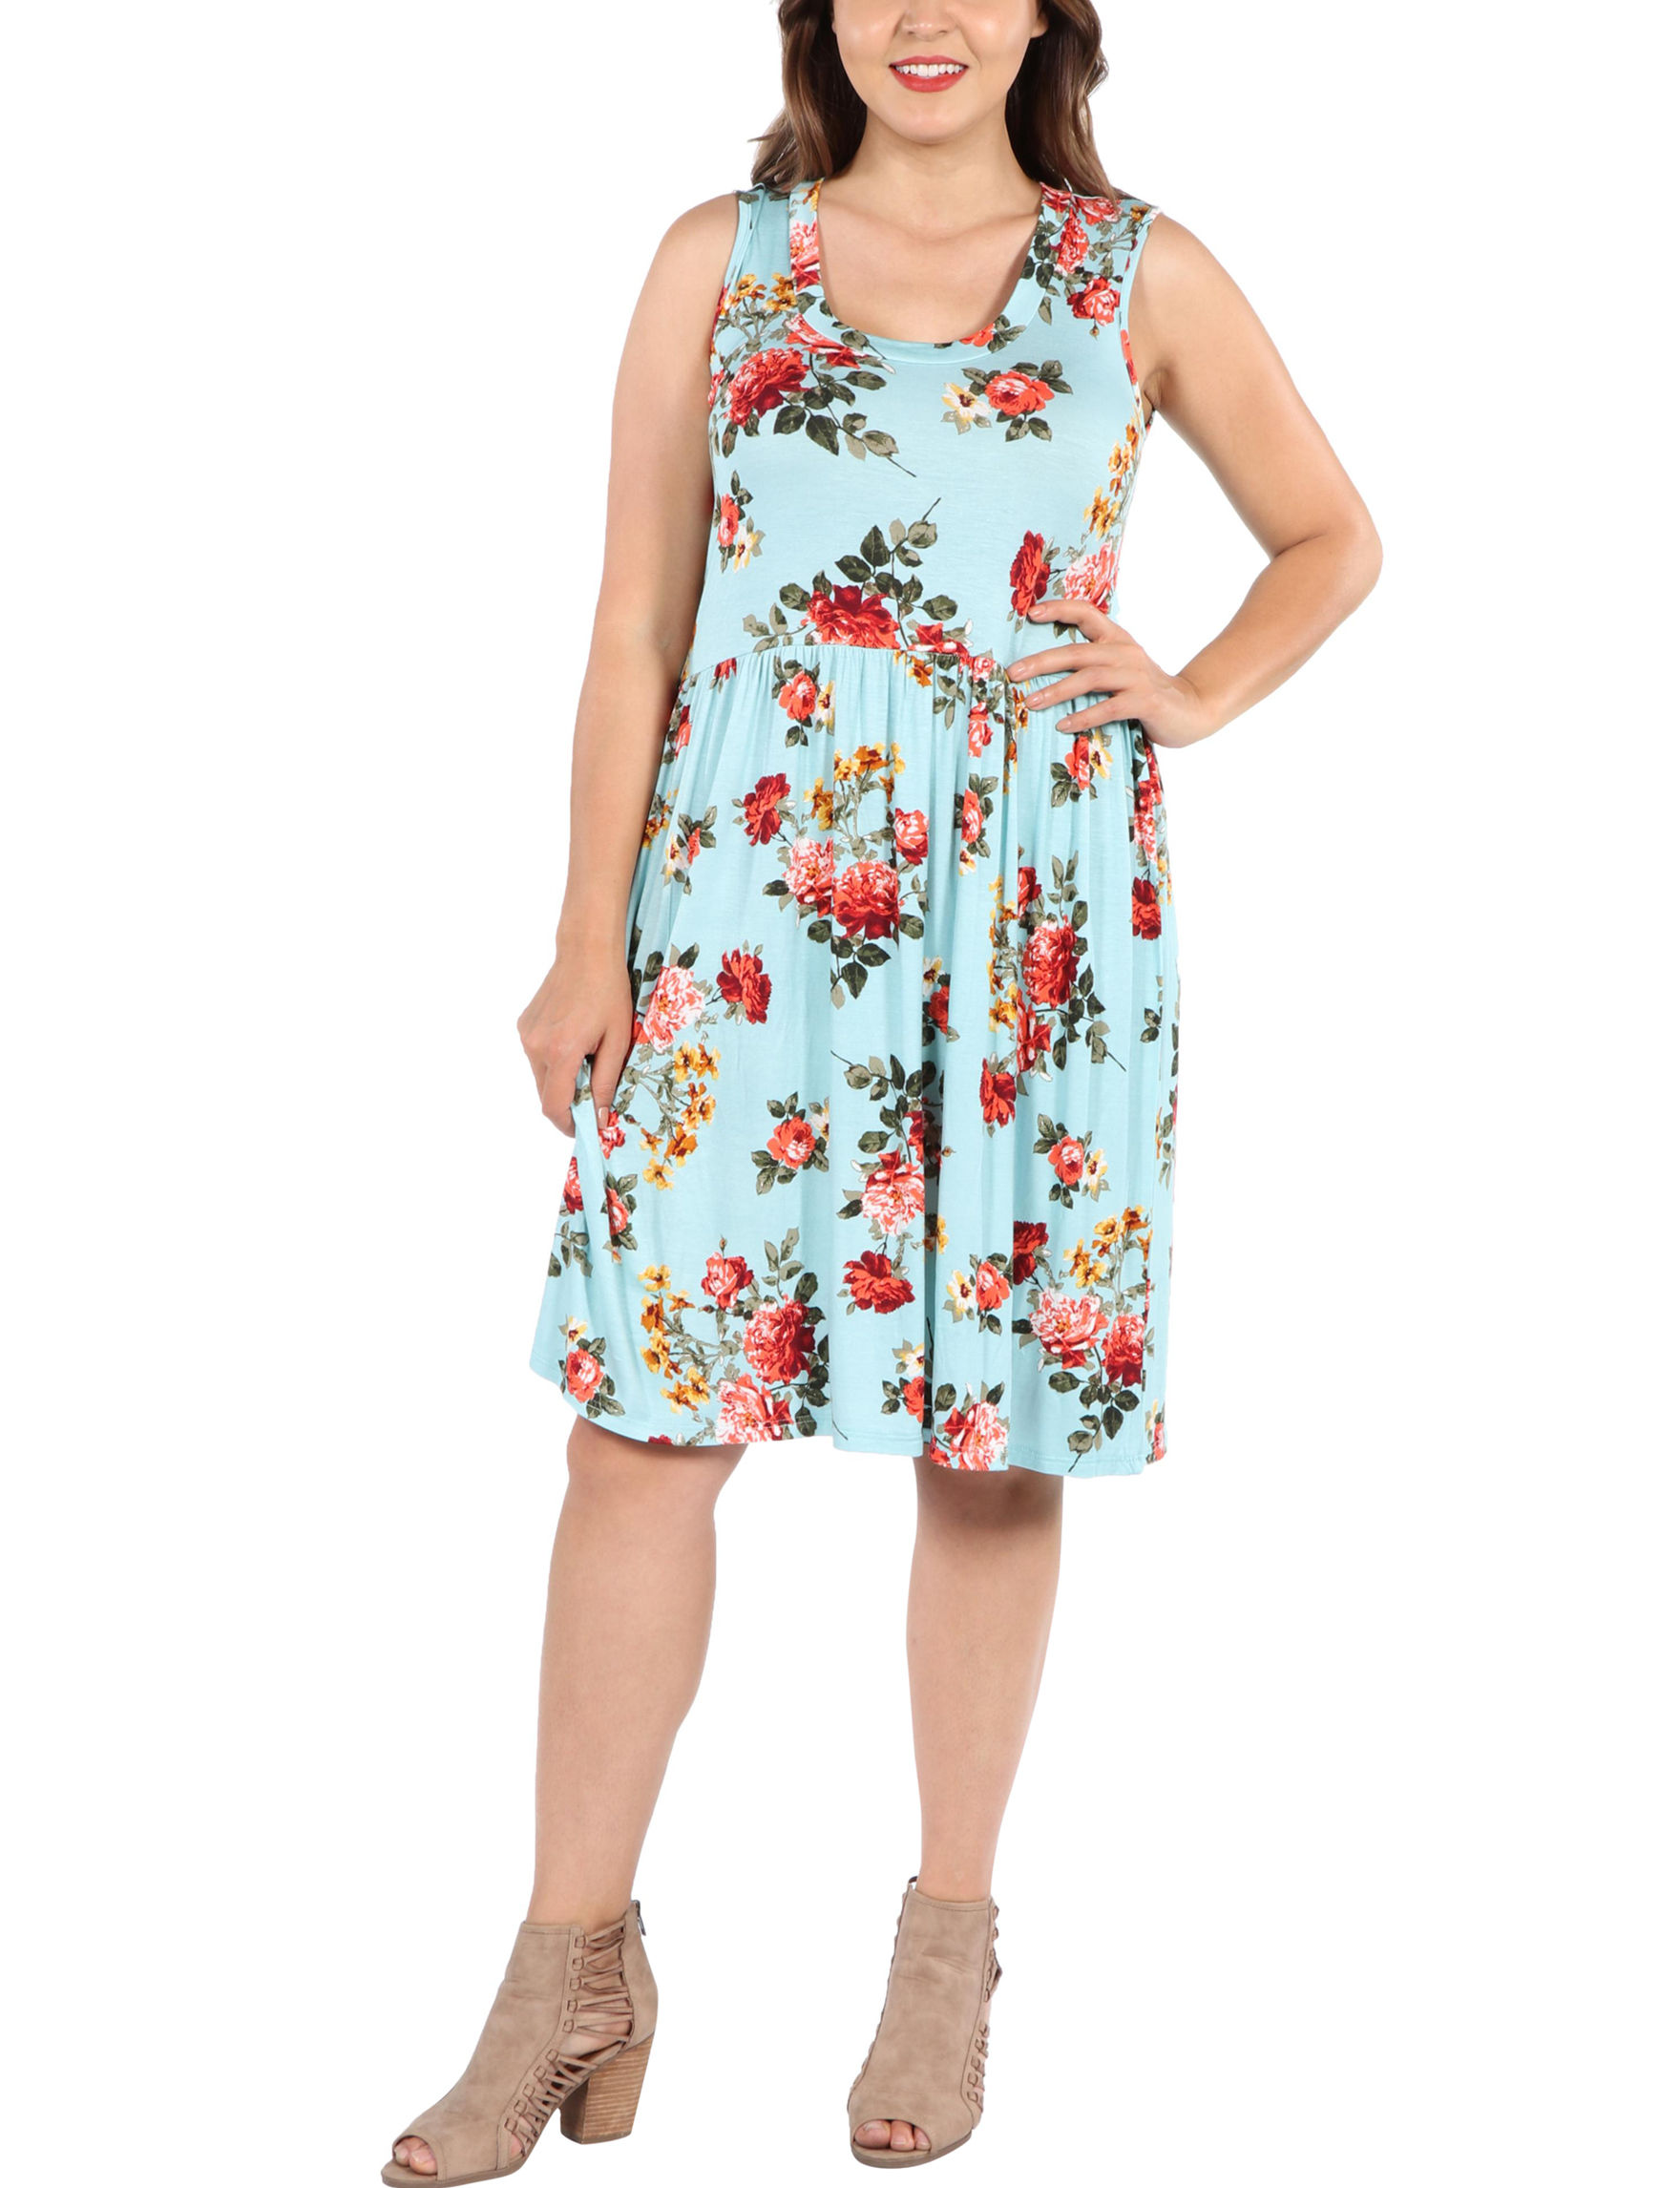 24Seven Comfort Apparel Blue Multi Everyday & Casual A-line Dresses